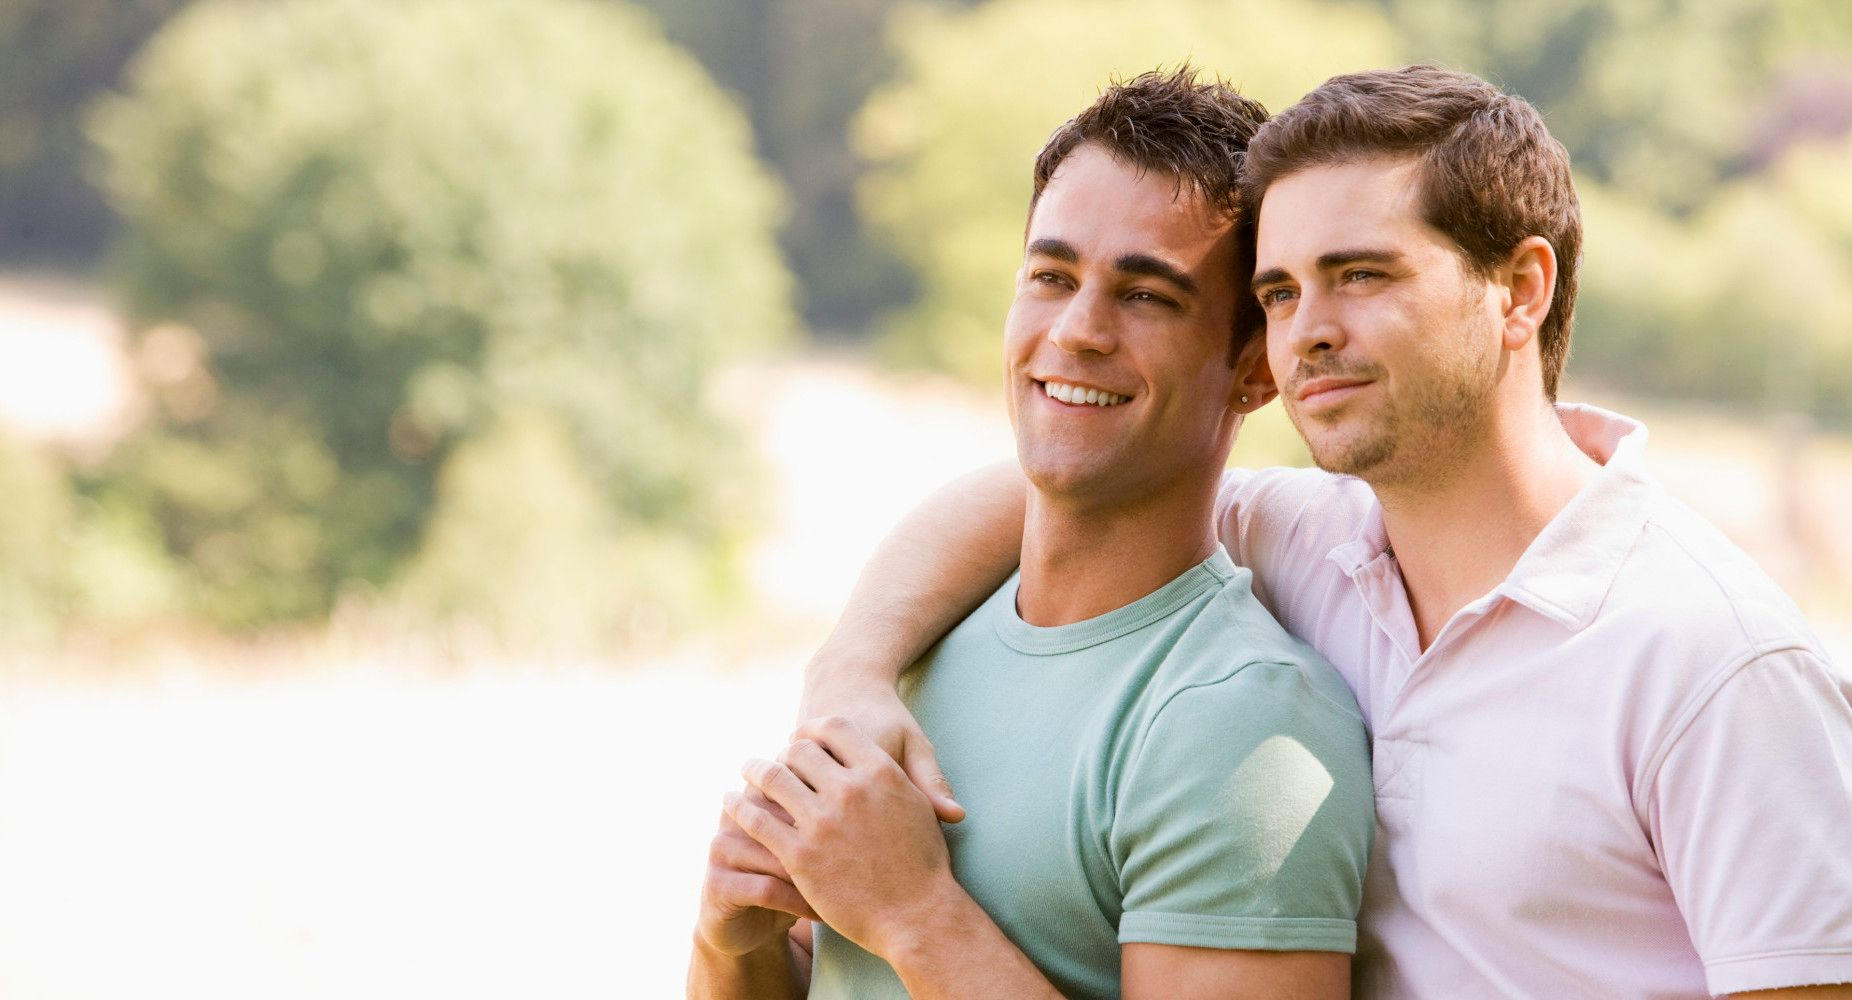 Free online gay hookup sites in india